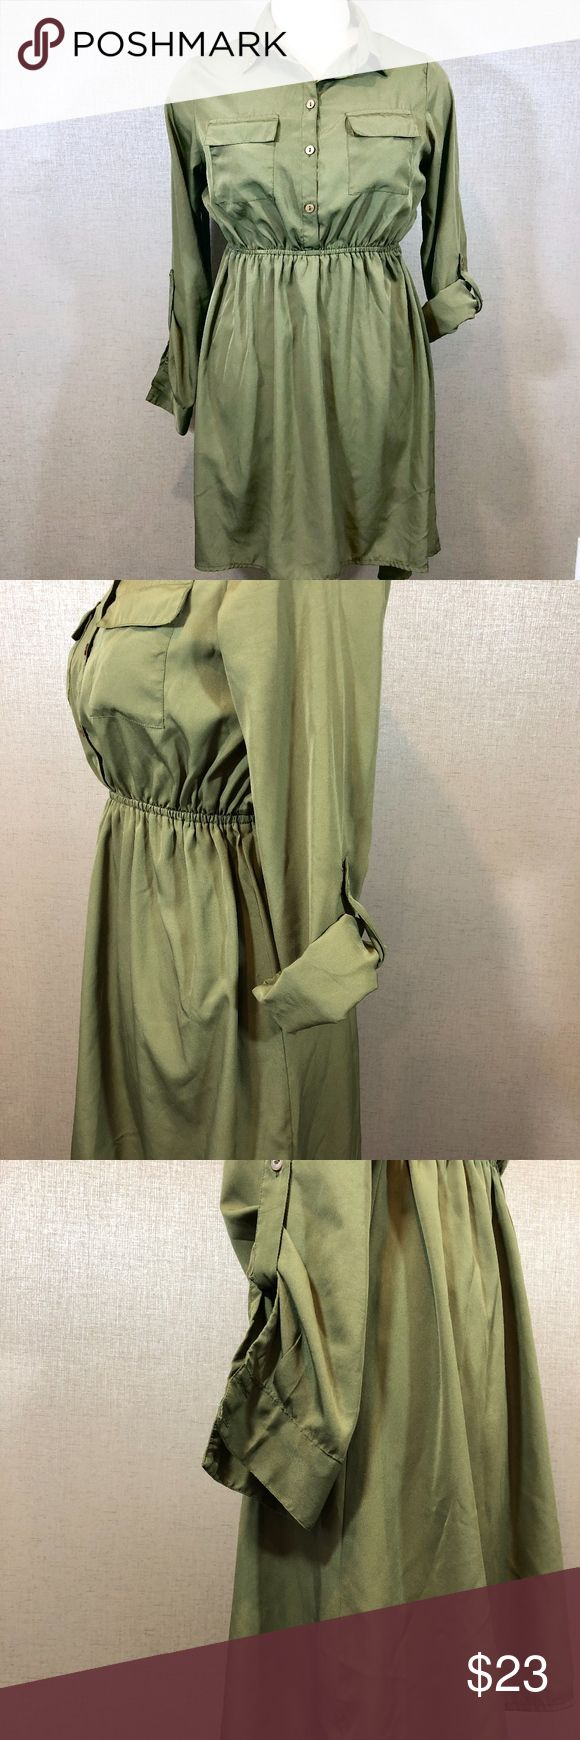 "Olive Green Tunic Dress with Sleeves Up for sale in good preowned condition, Olive Green Tunic/ Dress, fabric is quite thin, but not see through, can be worn together with skinny jeans, leggings or on its own. Please see photos for details. Check out my closet, bundle and give me your offer!  Measurements:  Back Top to Bottom: 38"" Front Top to Bottom: 30.5""   Bust Area:  Waist: 16.5"" Sleeve: 23"" All measurements are approximate and taken flat in the front only. Pink Rose Dresses"